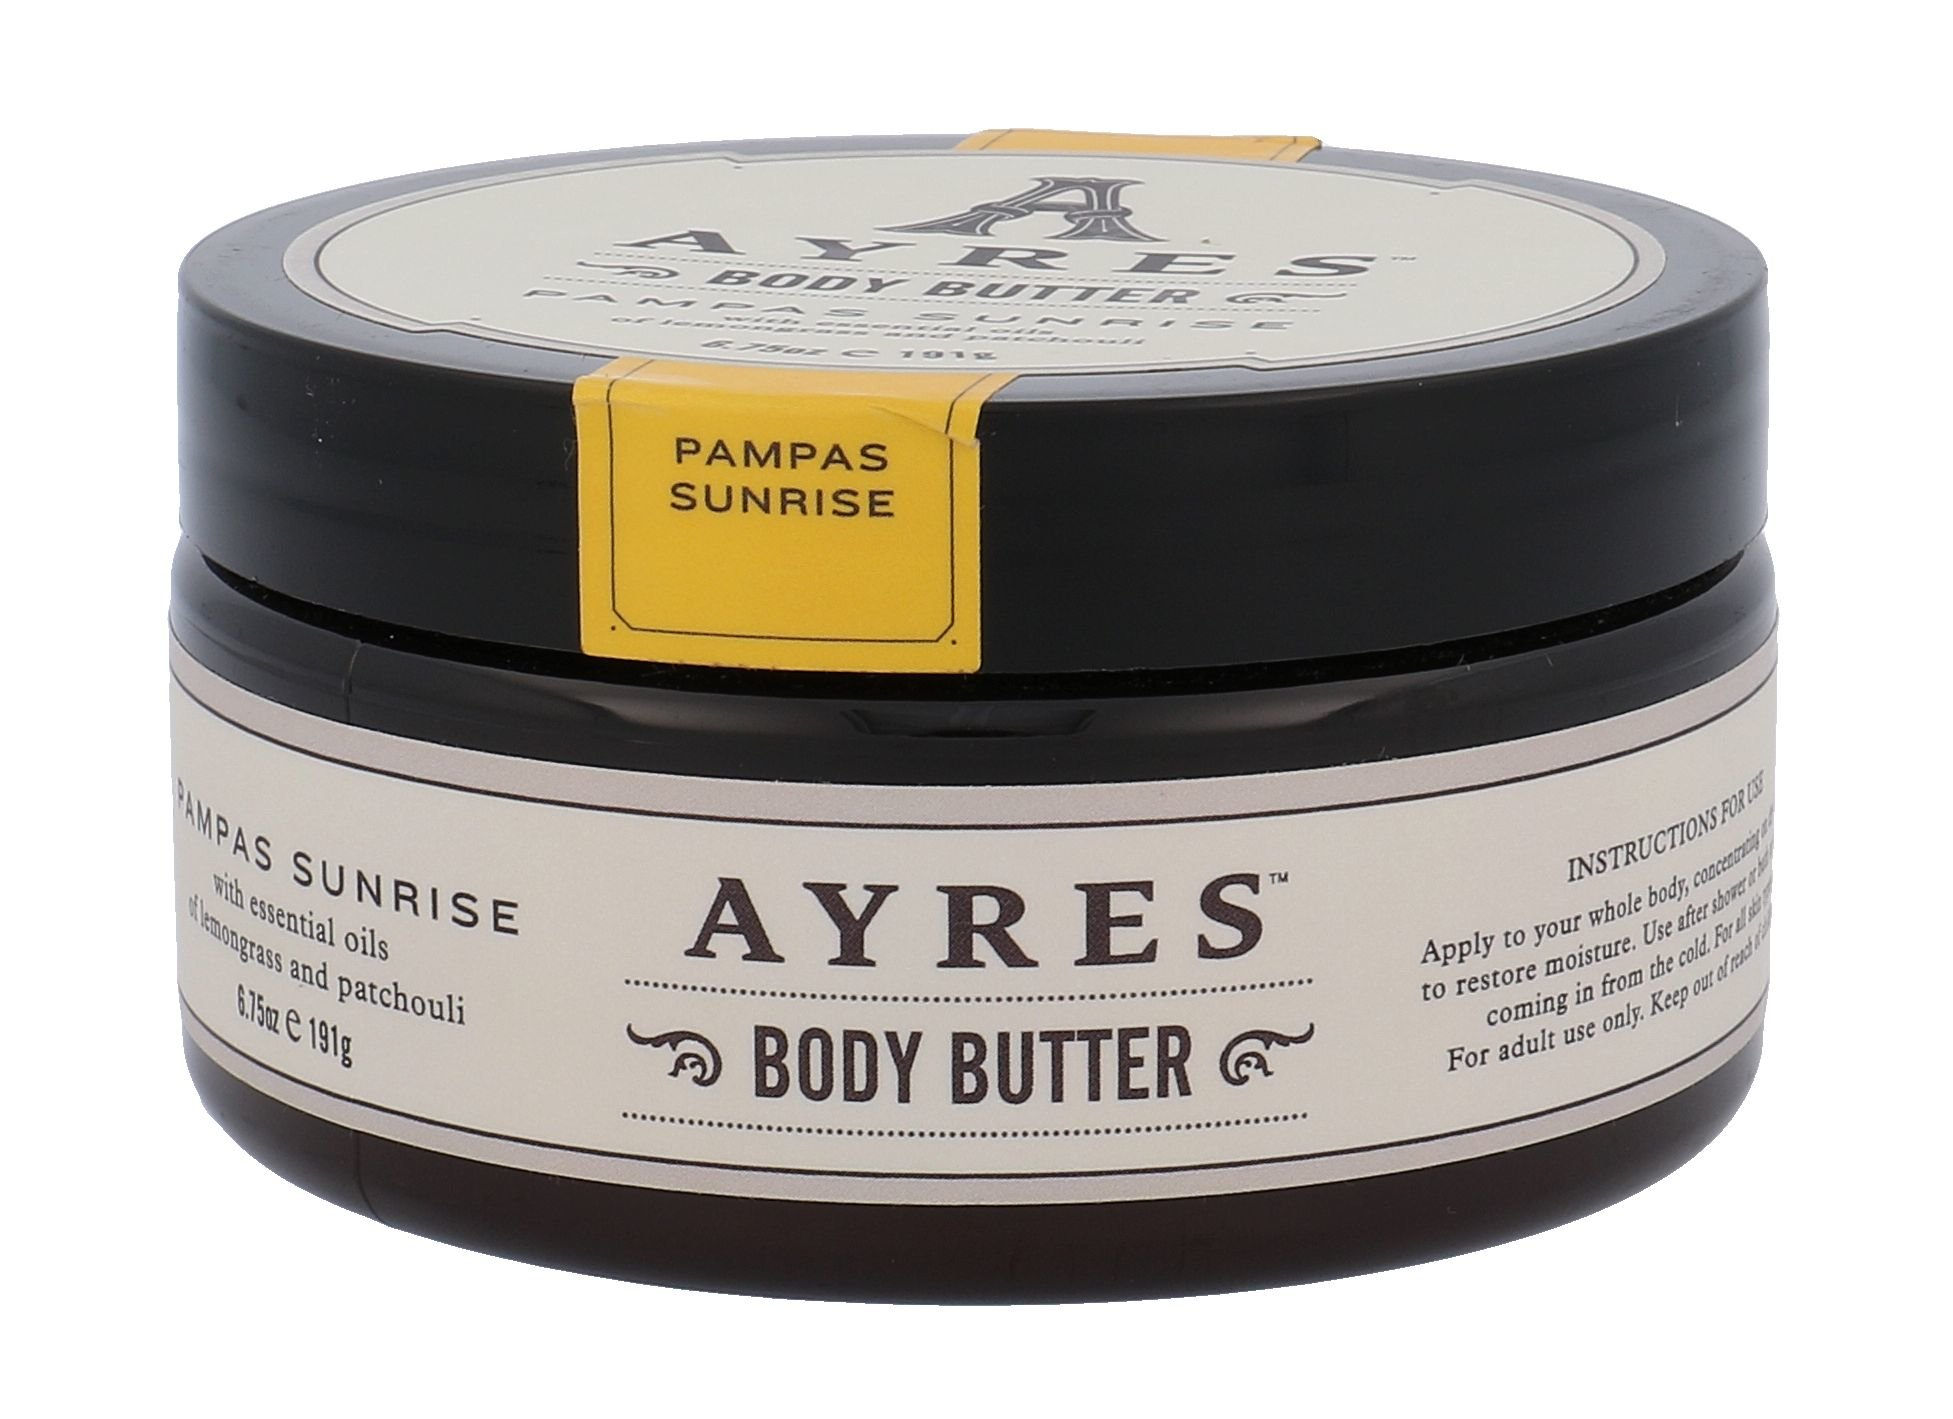 Ayres Pampas Sunrise Body Butter Cosmetic 191g